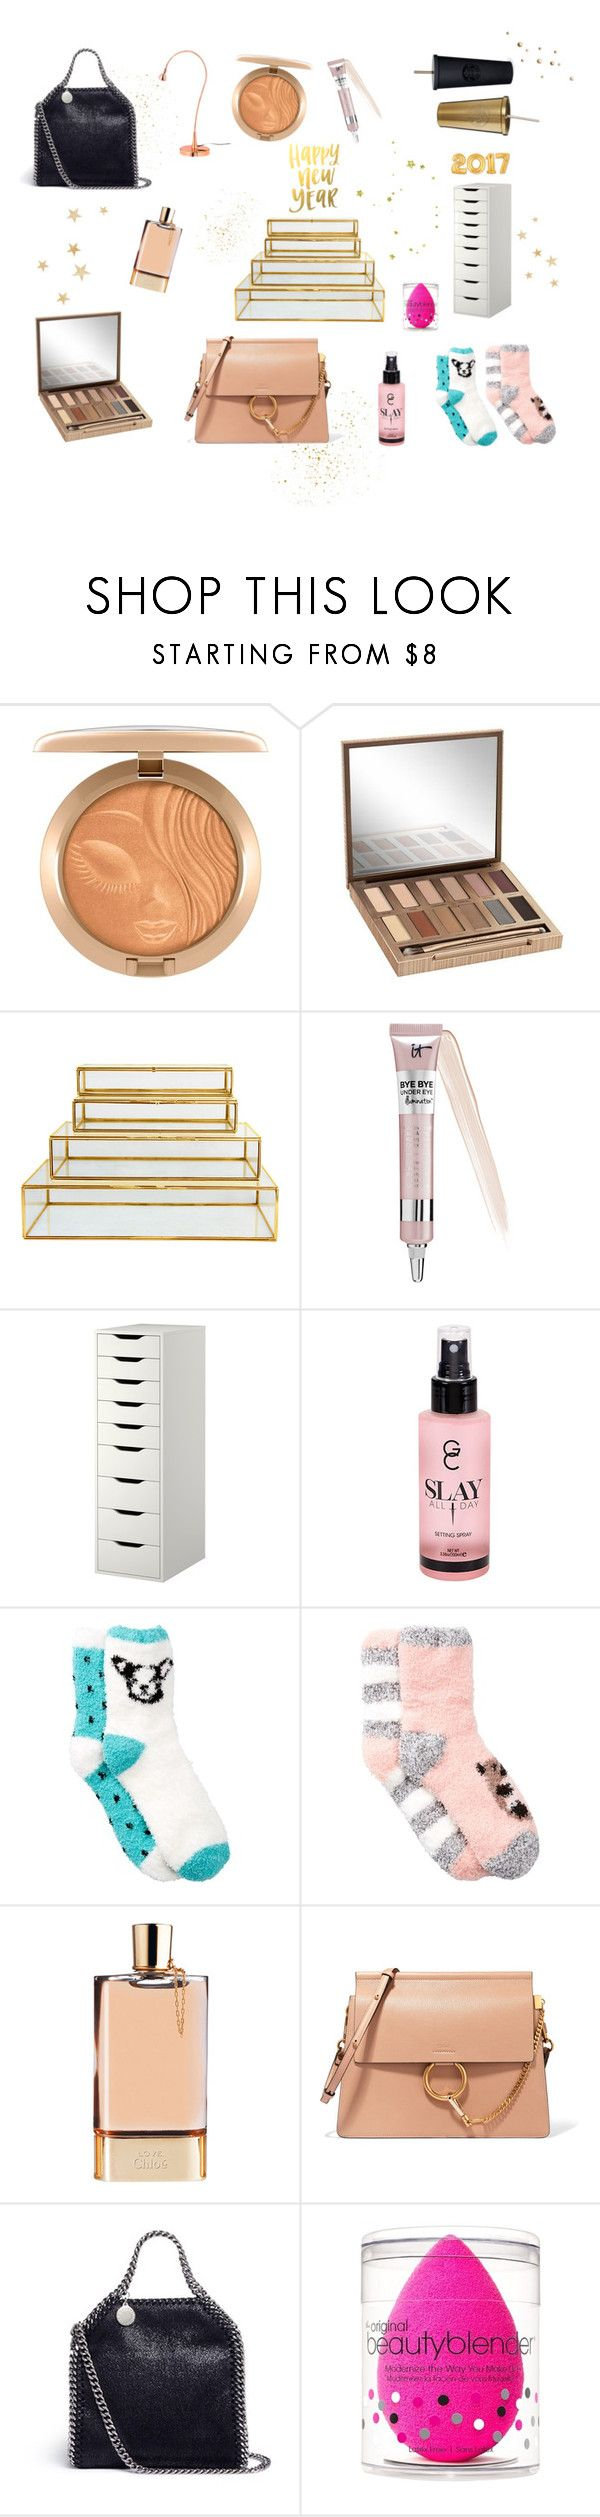 """""""Wishlist 2016 Christmas"""" by beristenbul ❤ liked on Polyvore featuring Urban Decay, &klevering, Sephora Collection, Gerard Cosmetics, Free Press, Chloé, STELLA McCARTNEY and beautyblender"""